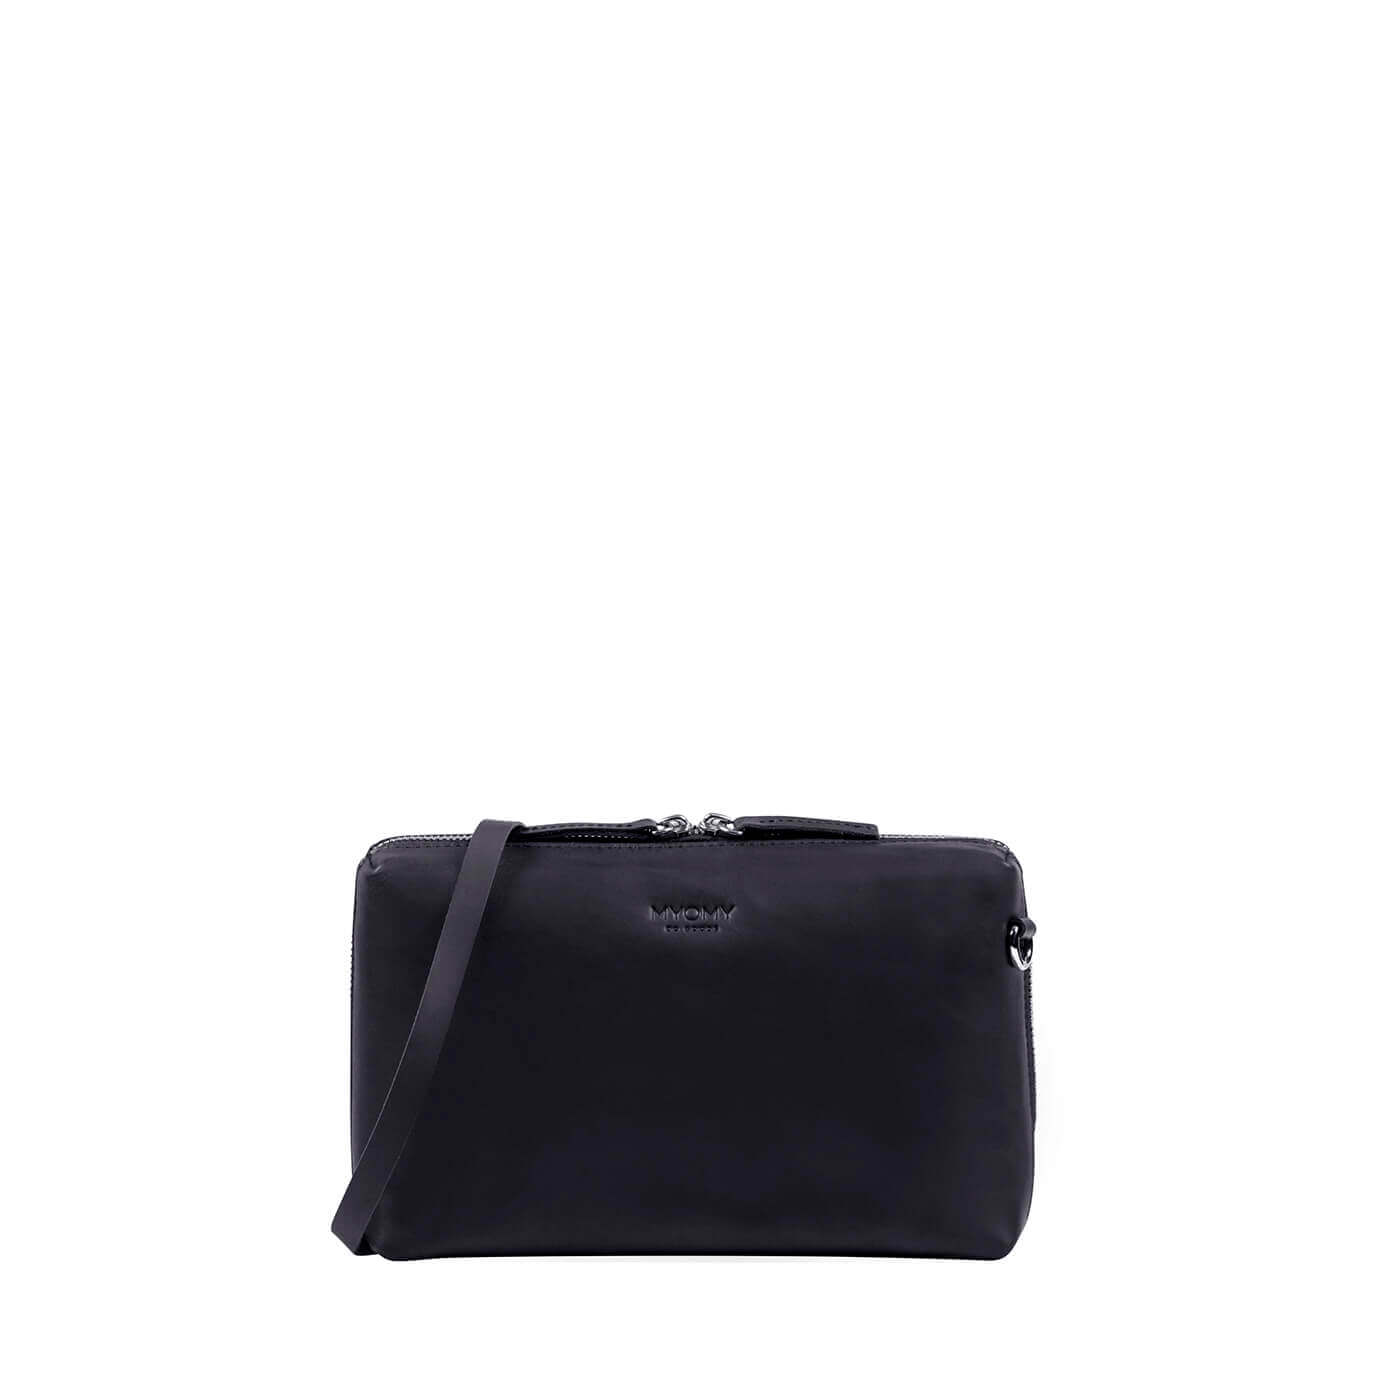 MY BOXY BAG Handbag - hunter off-black